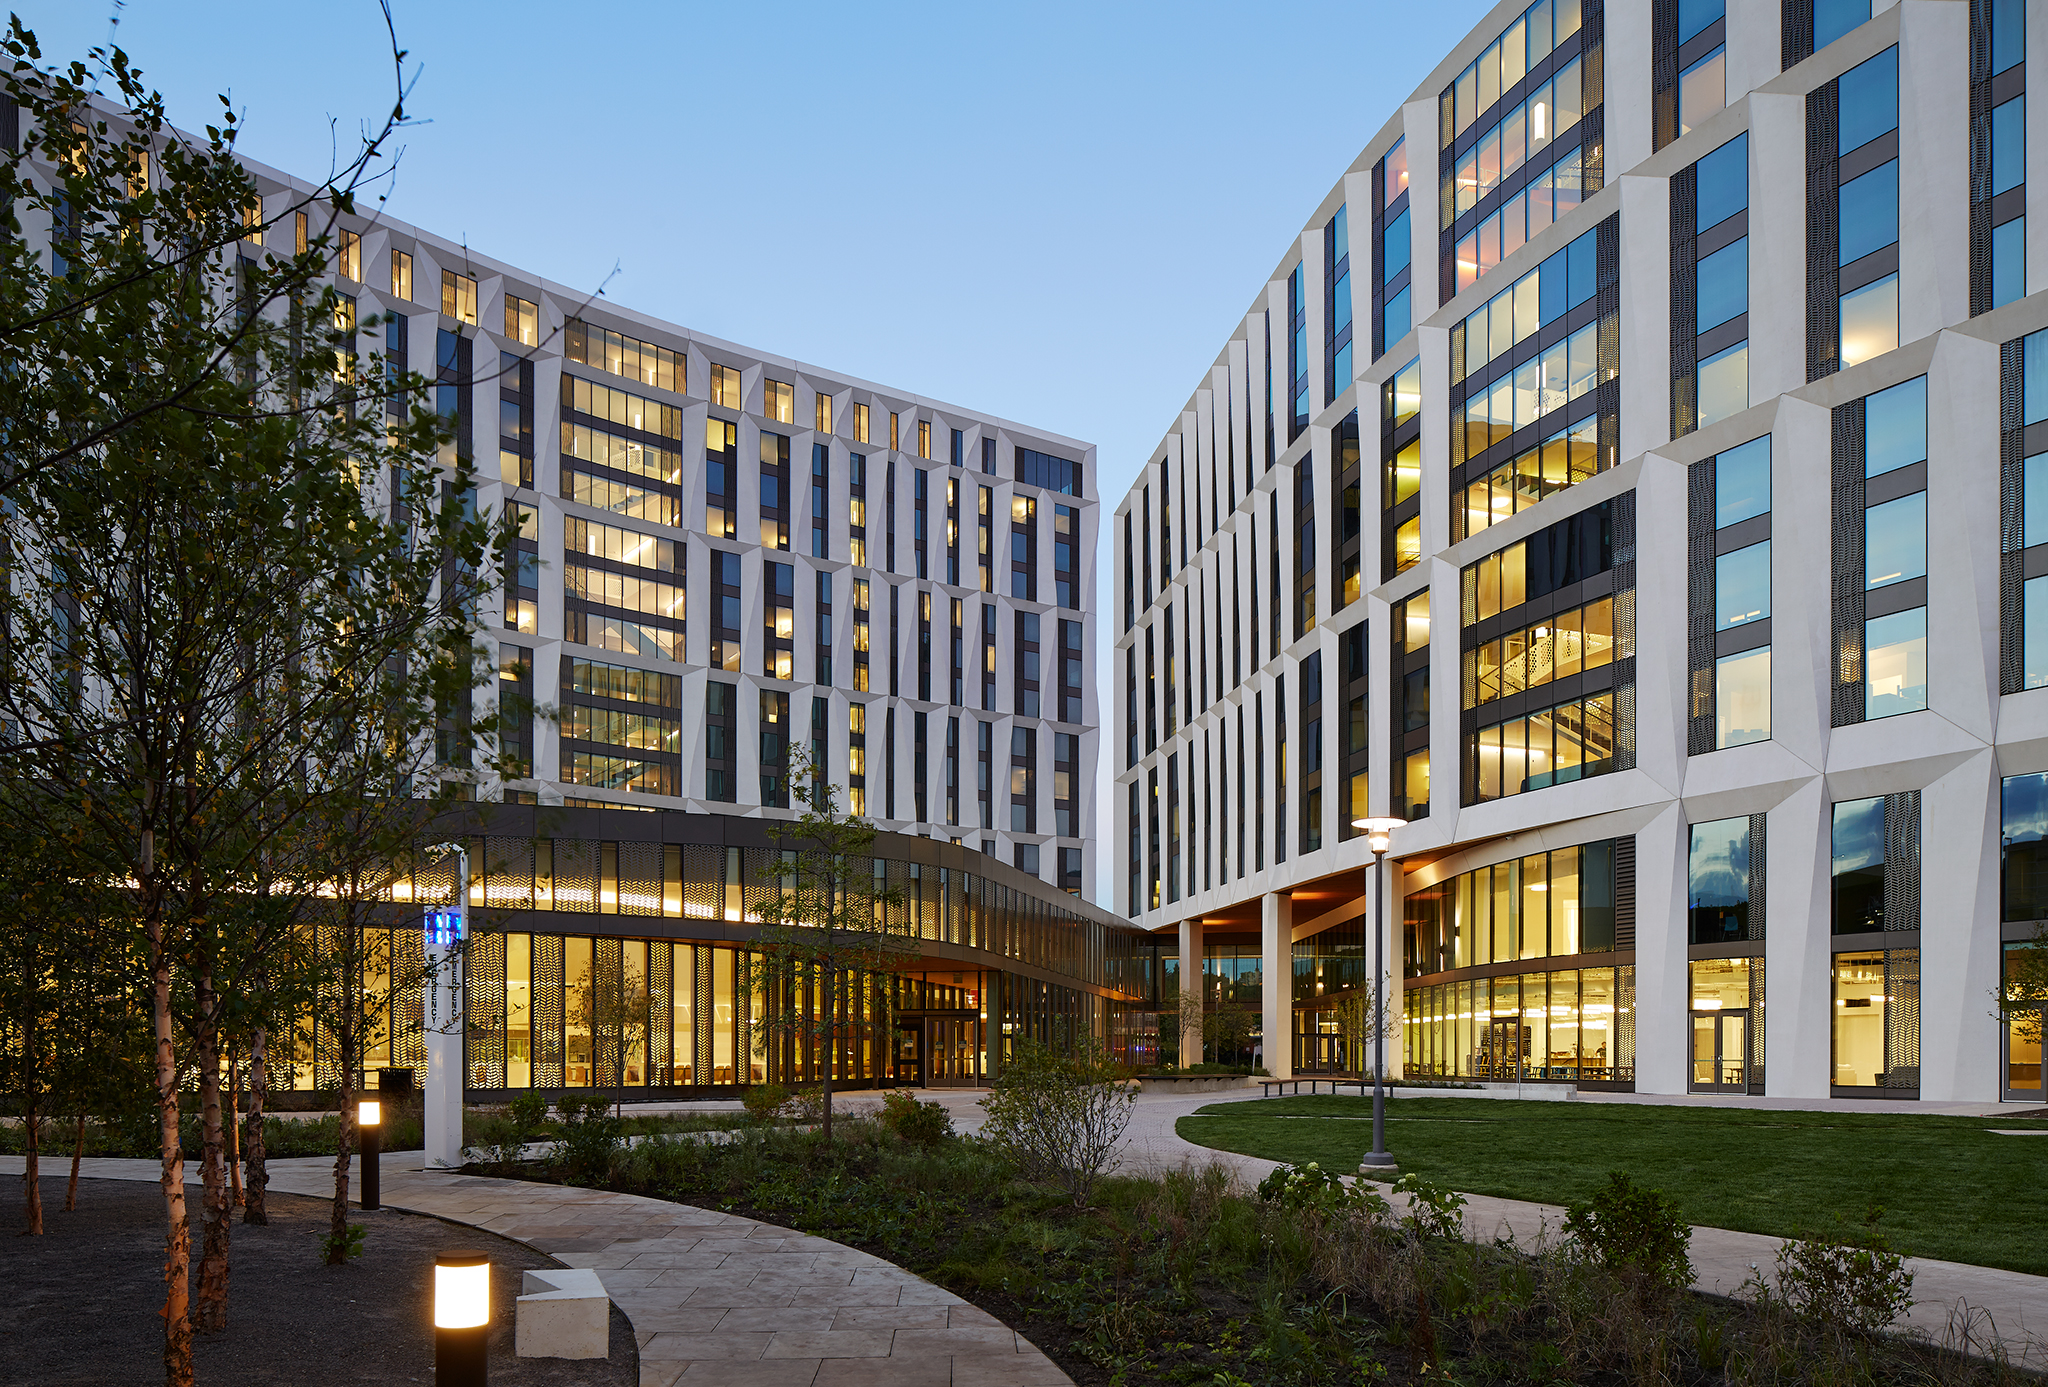 University of chicago opens campus north residential for University of houston student housing